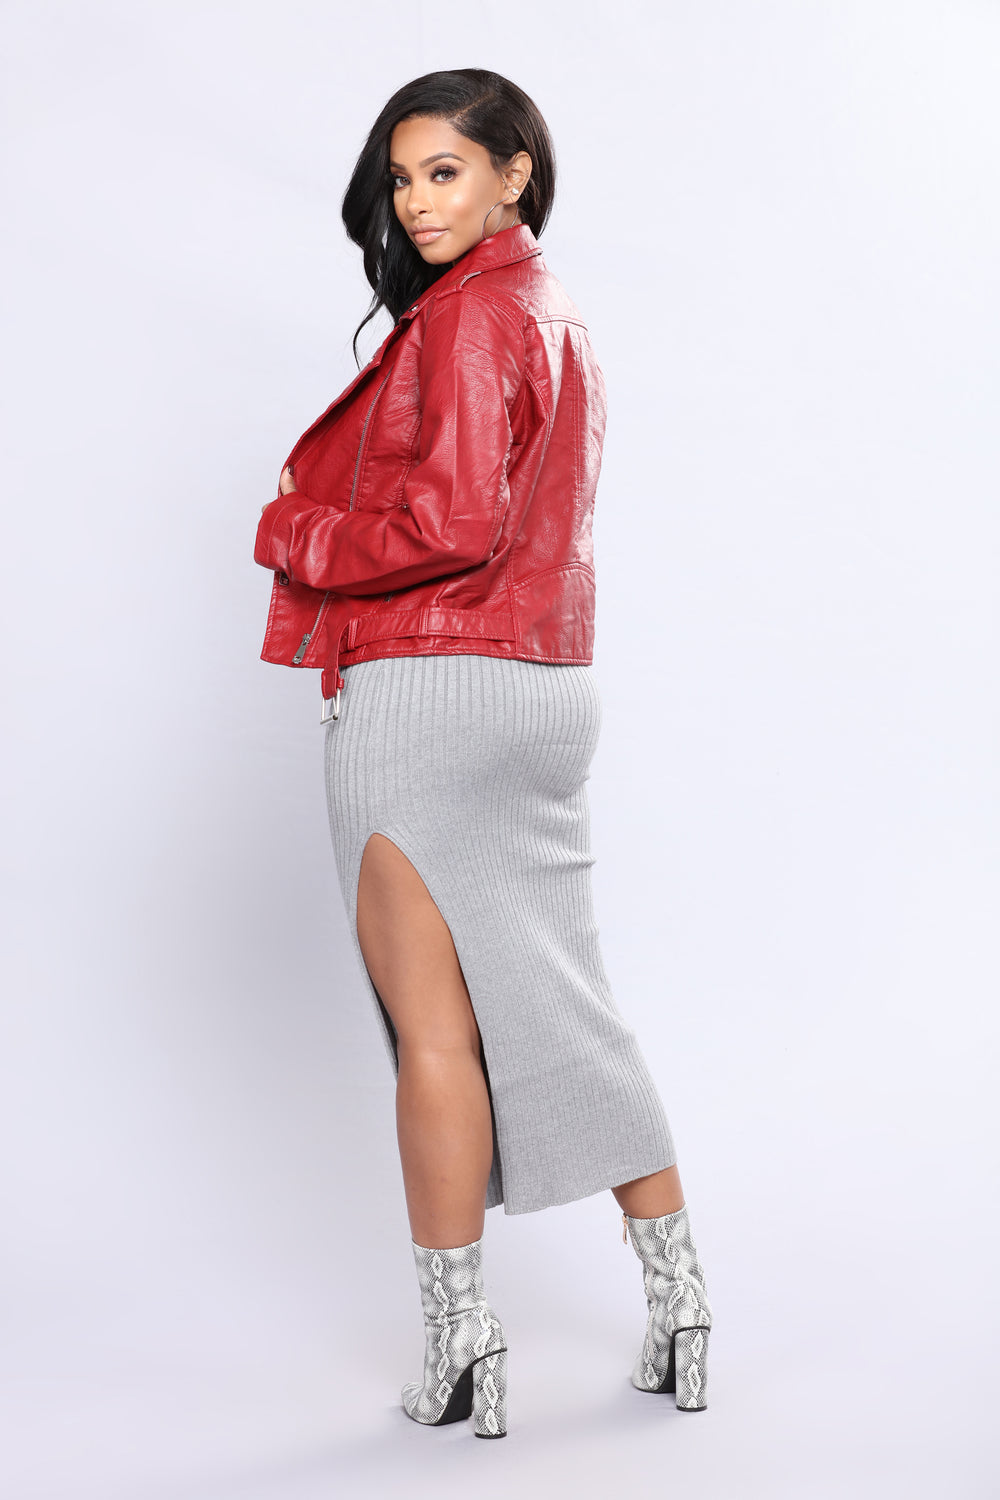 Araxie Vegan Leather Jacket - Red